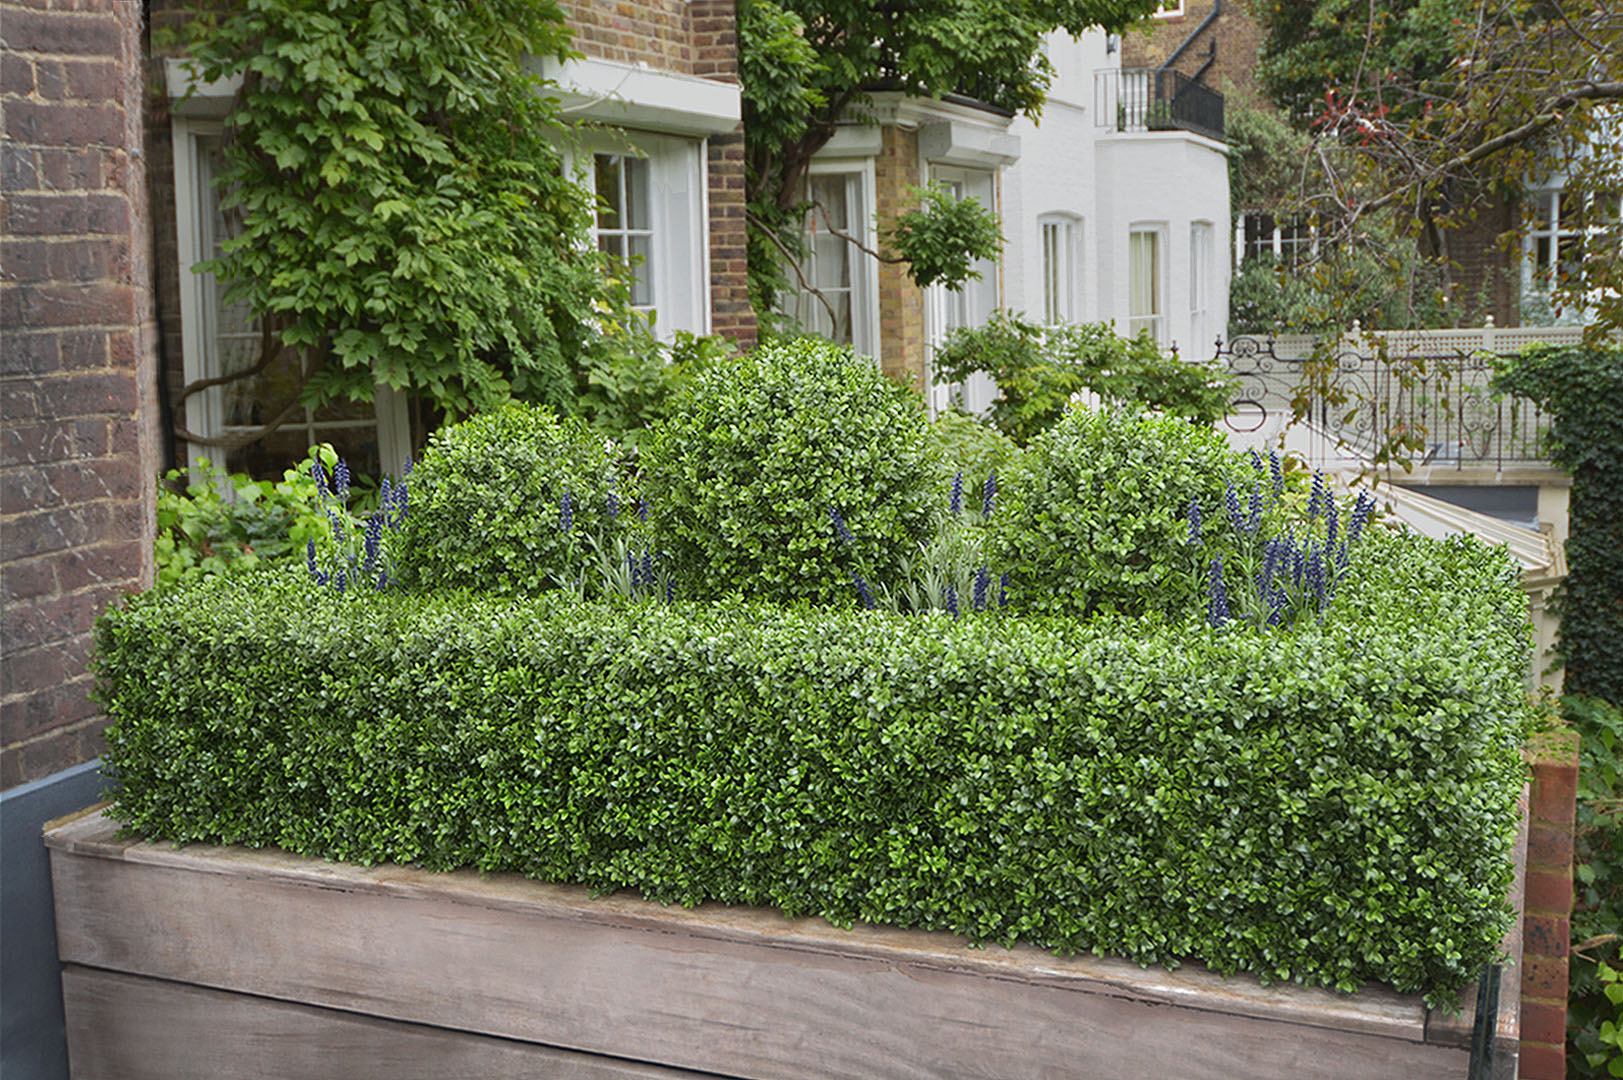 609 fake landscapes low inset hedge with balls and lavender